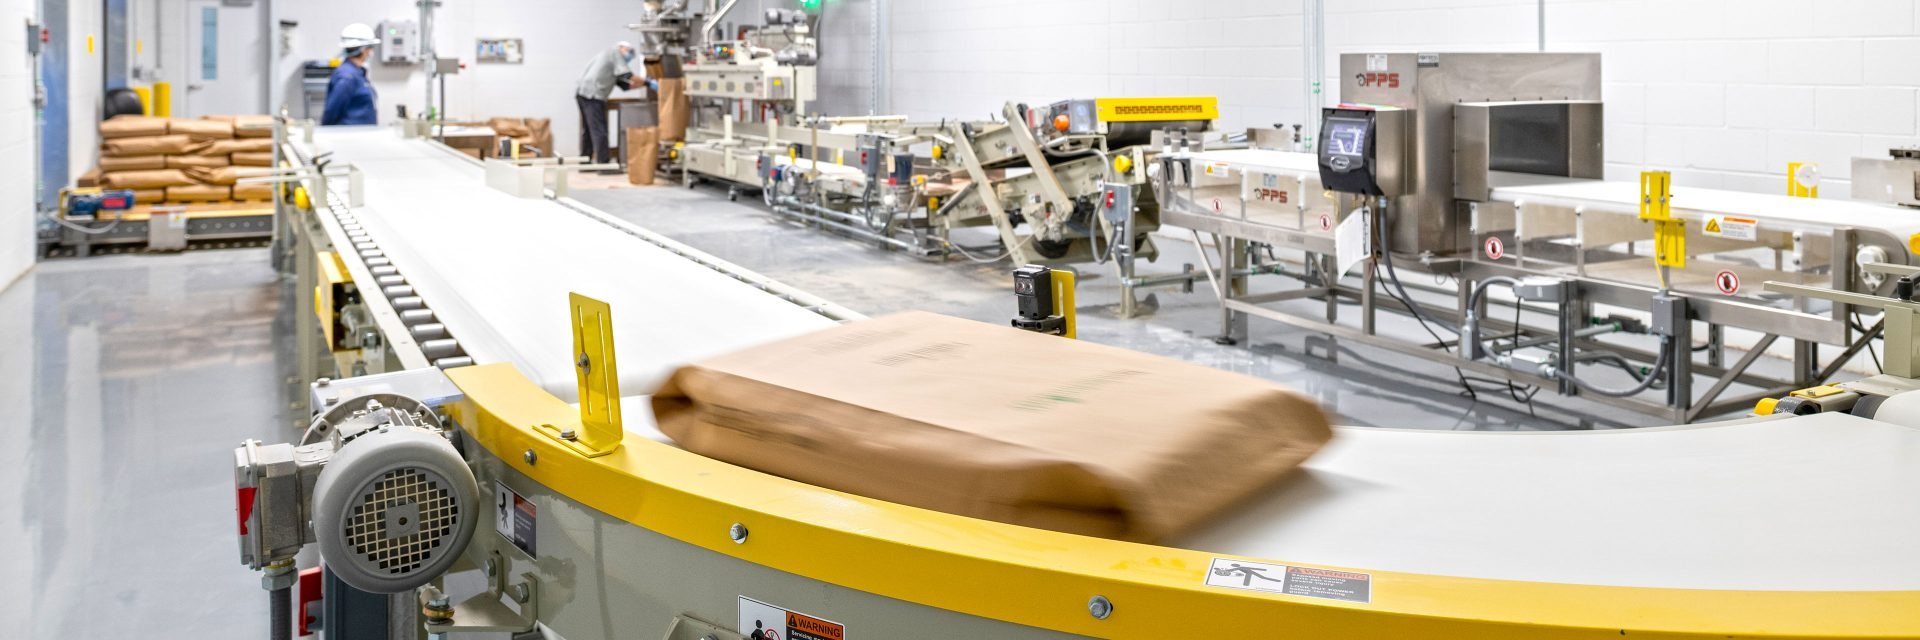 Optimizing Facility, Process & Packaging Design for Food Safety